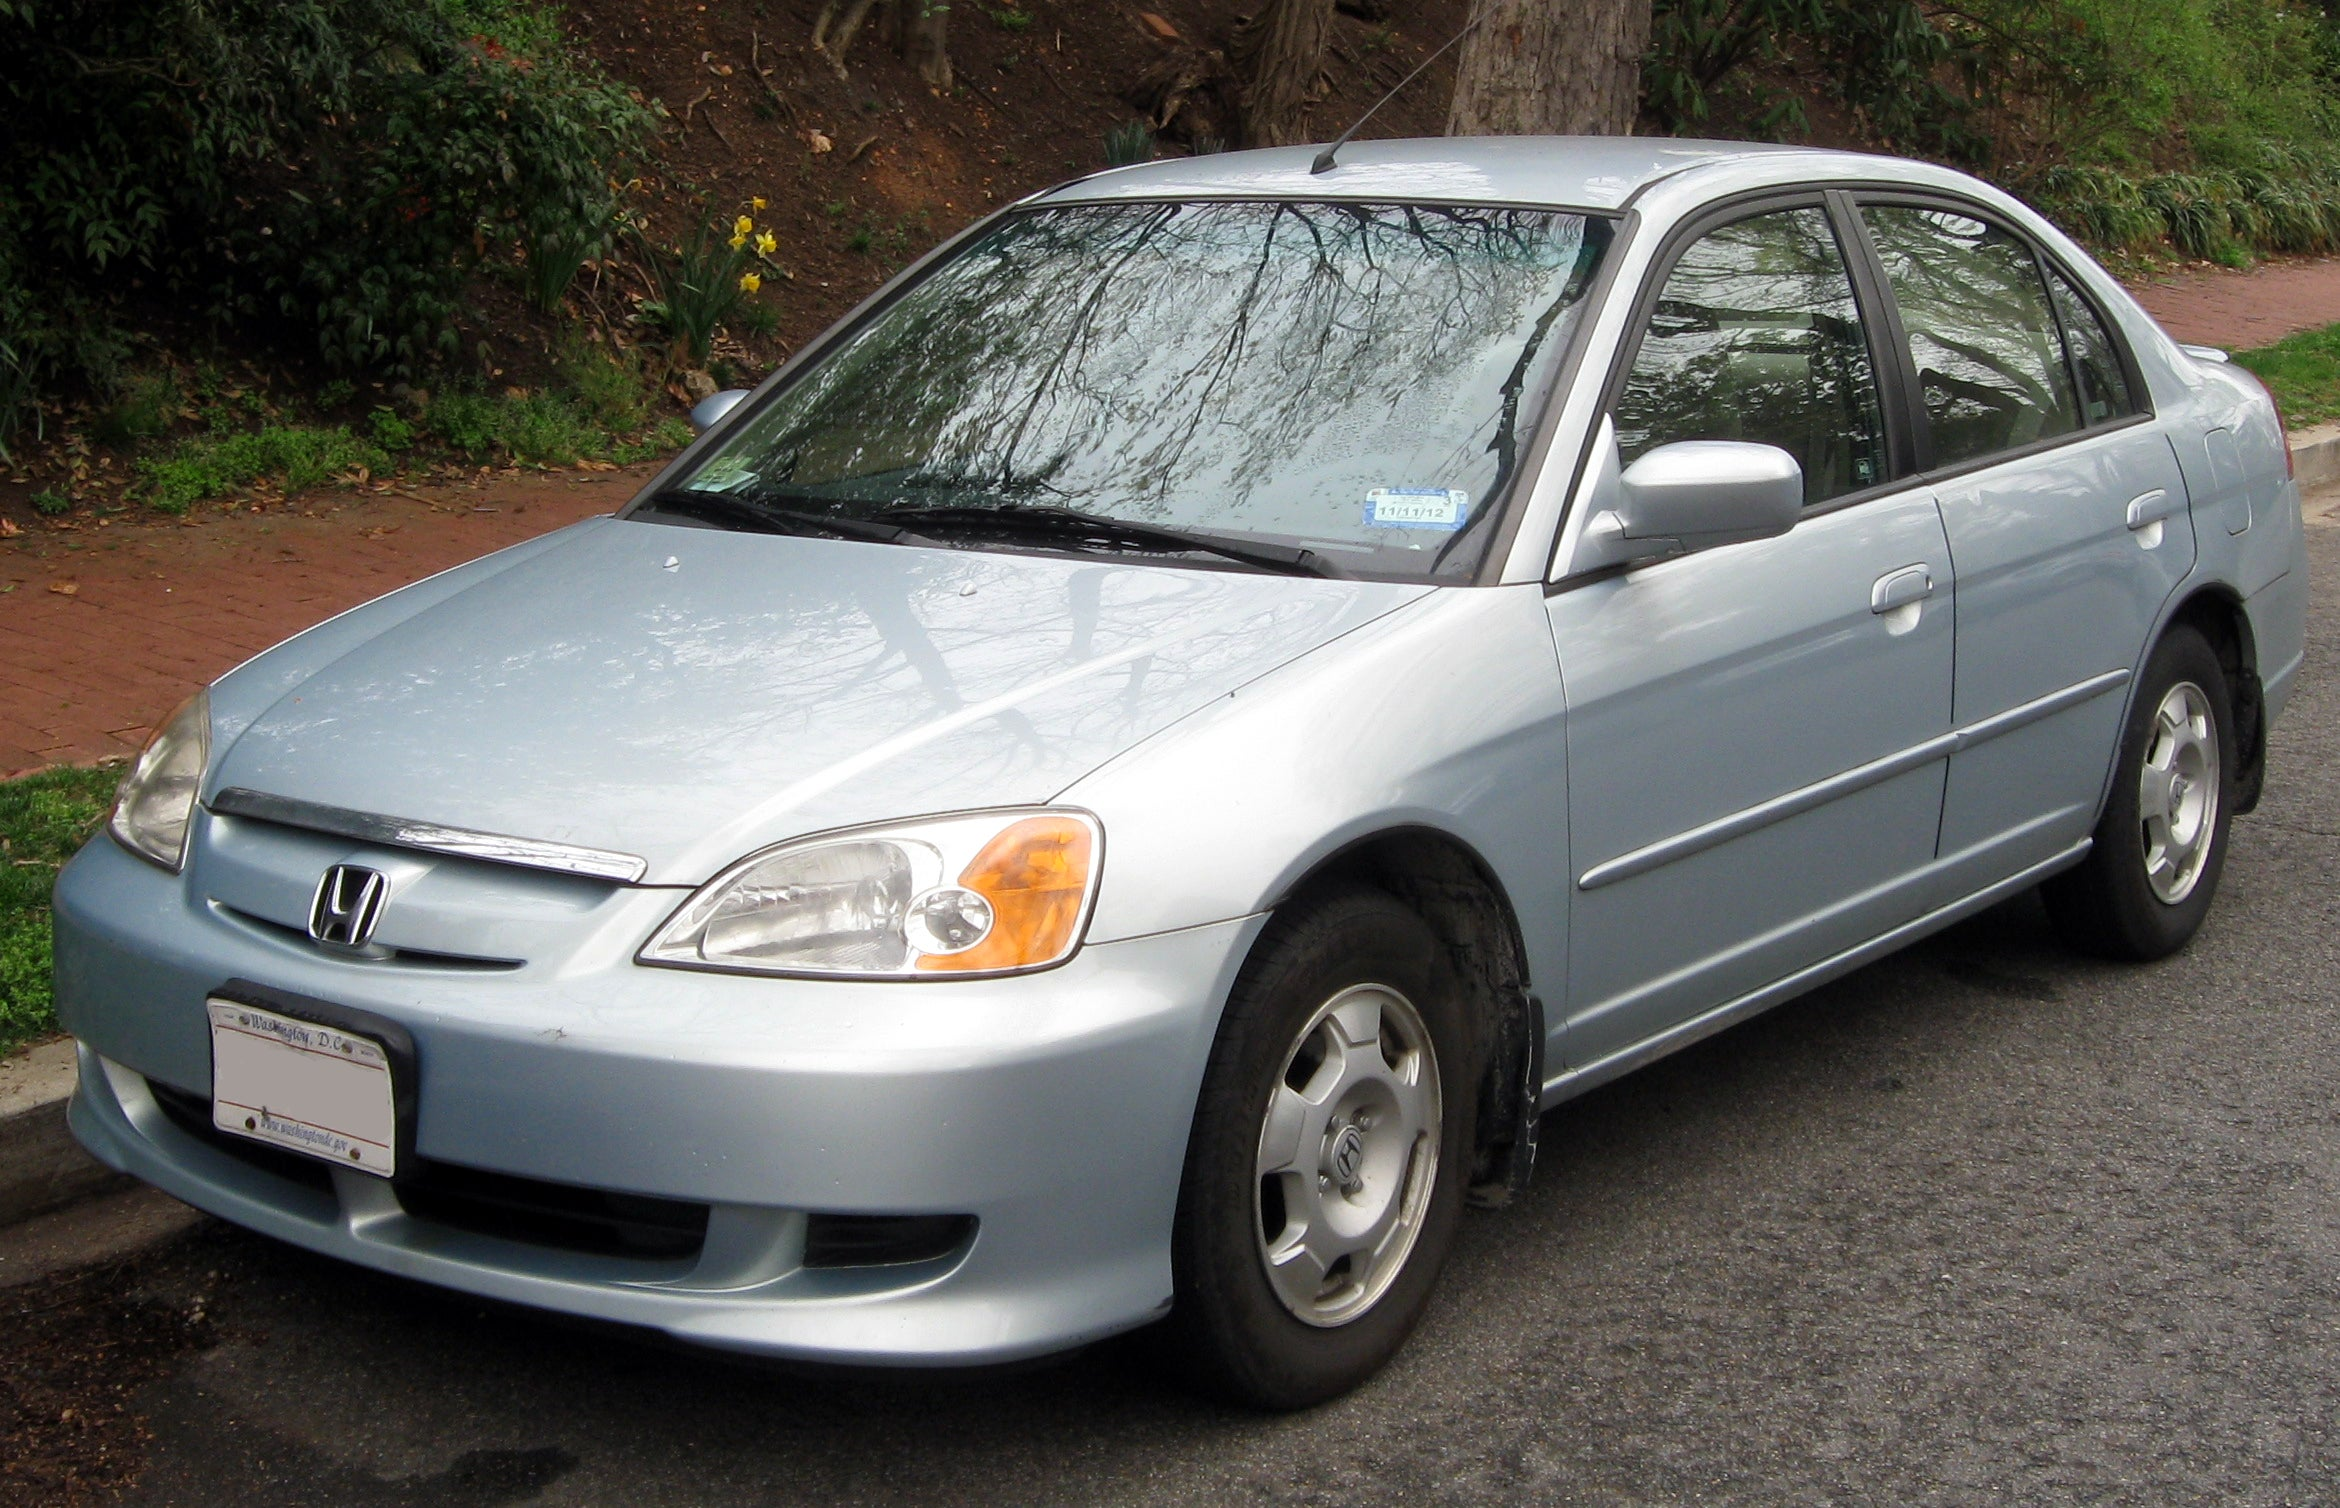 2005 civic hybrid manual actually not that bad rh oppositelock kinja com 2005 Civic Hybrid Battery Life 2005 honda civic hybrid owners manual pdf